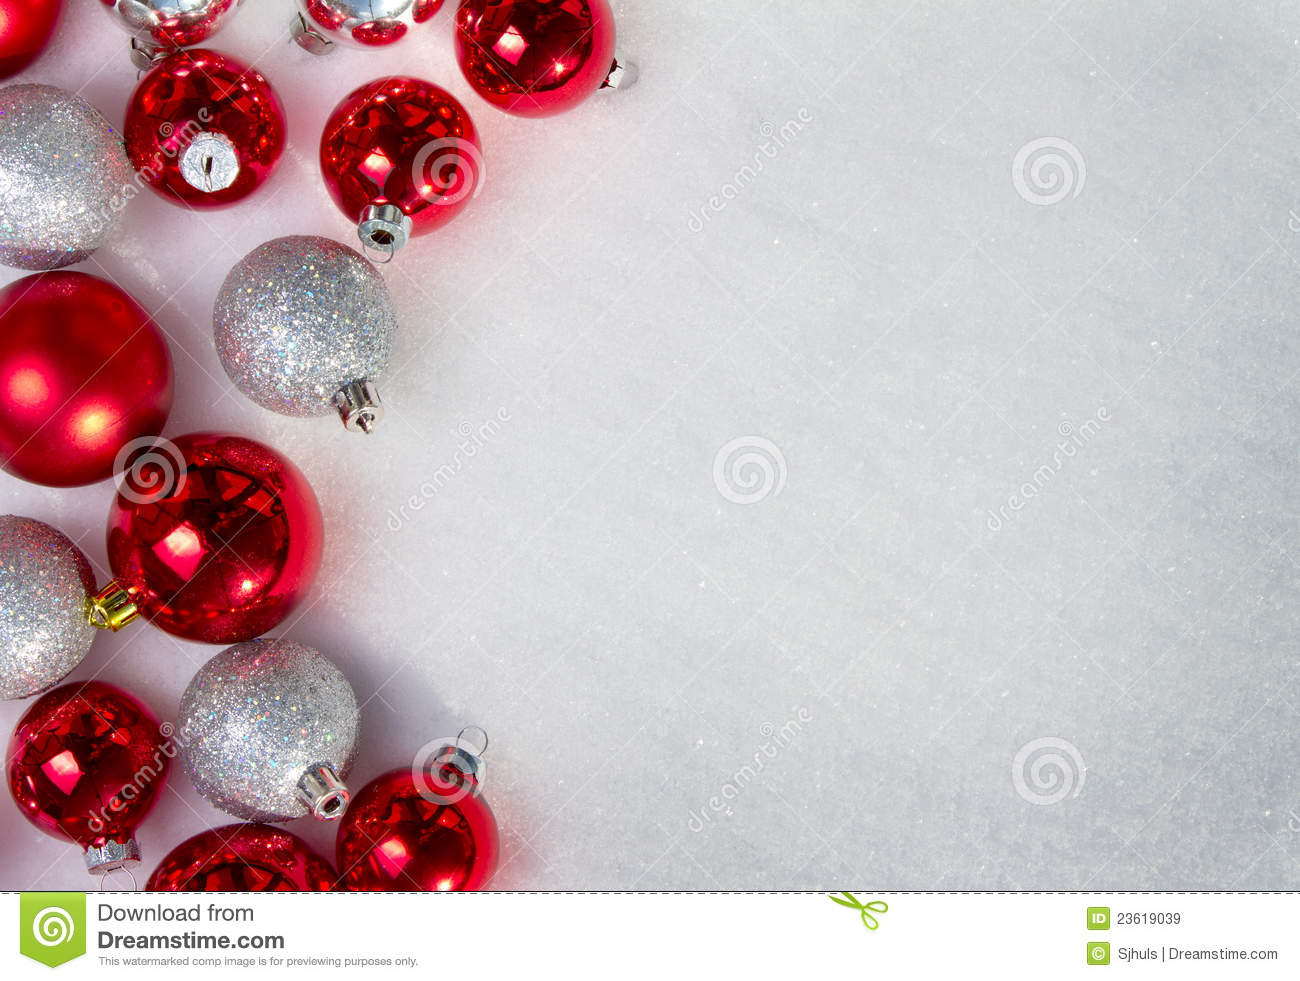 picture of free images of christmas ornaments all can download